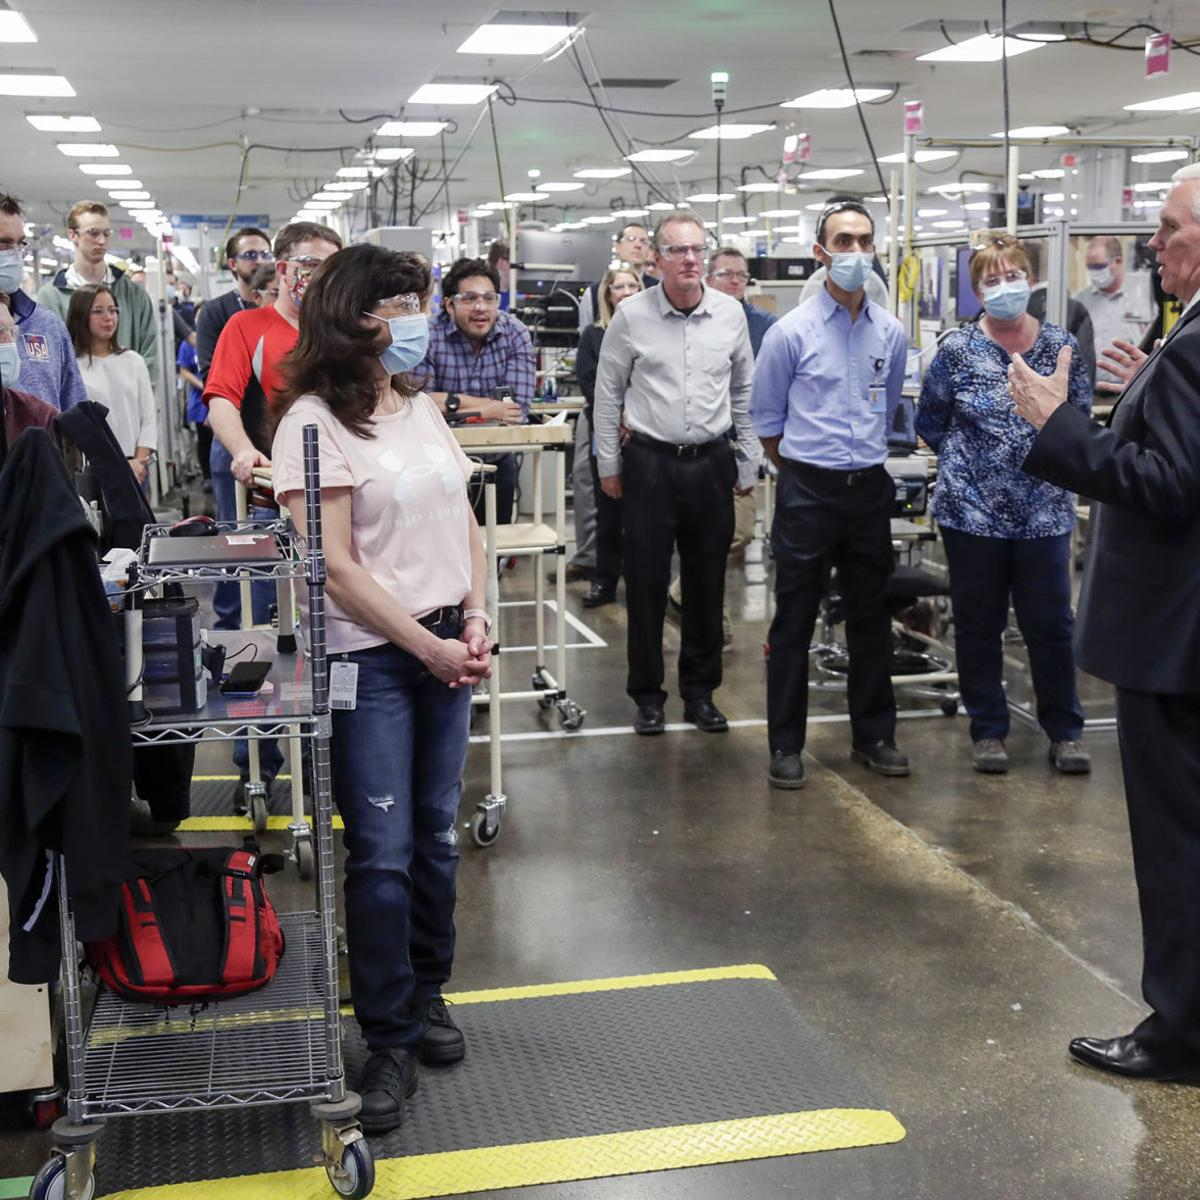 Vp Mike Pence Visits Wisconsin Amid Criticism Of Covid 19 Response Local Government Madison Com